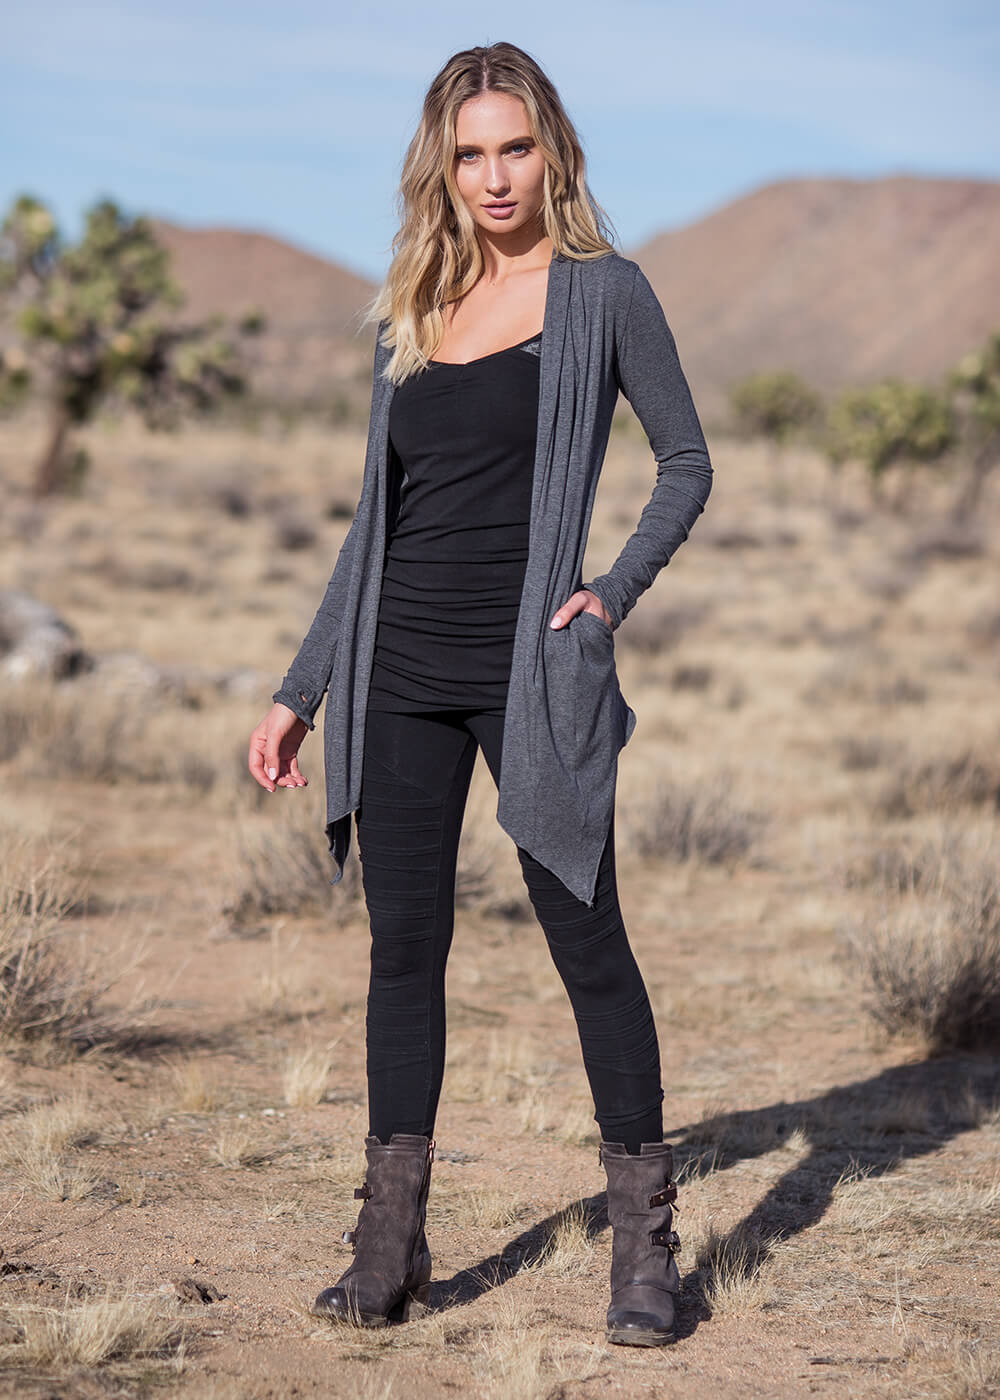 Twilight Cardigan in Organic Cotton & Bamboo - Nomads Hemp Wear